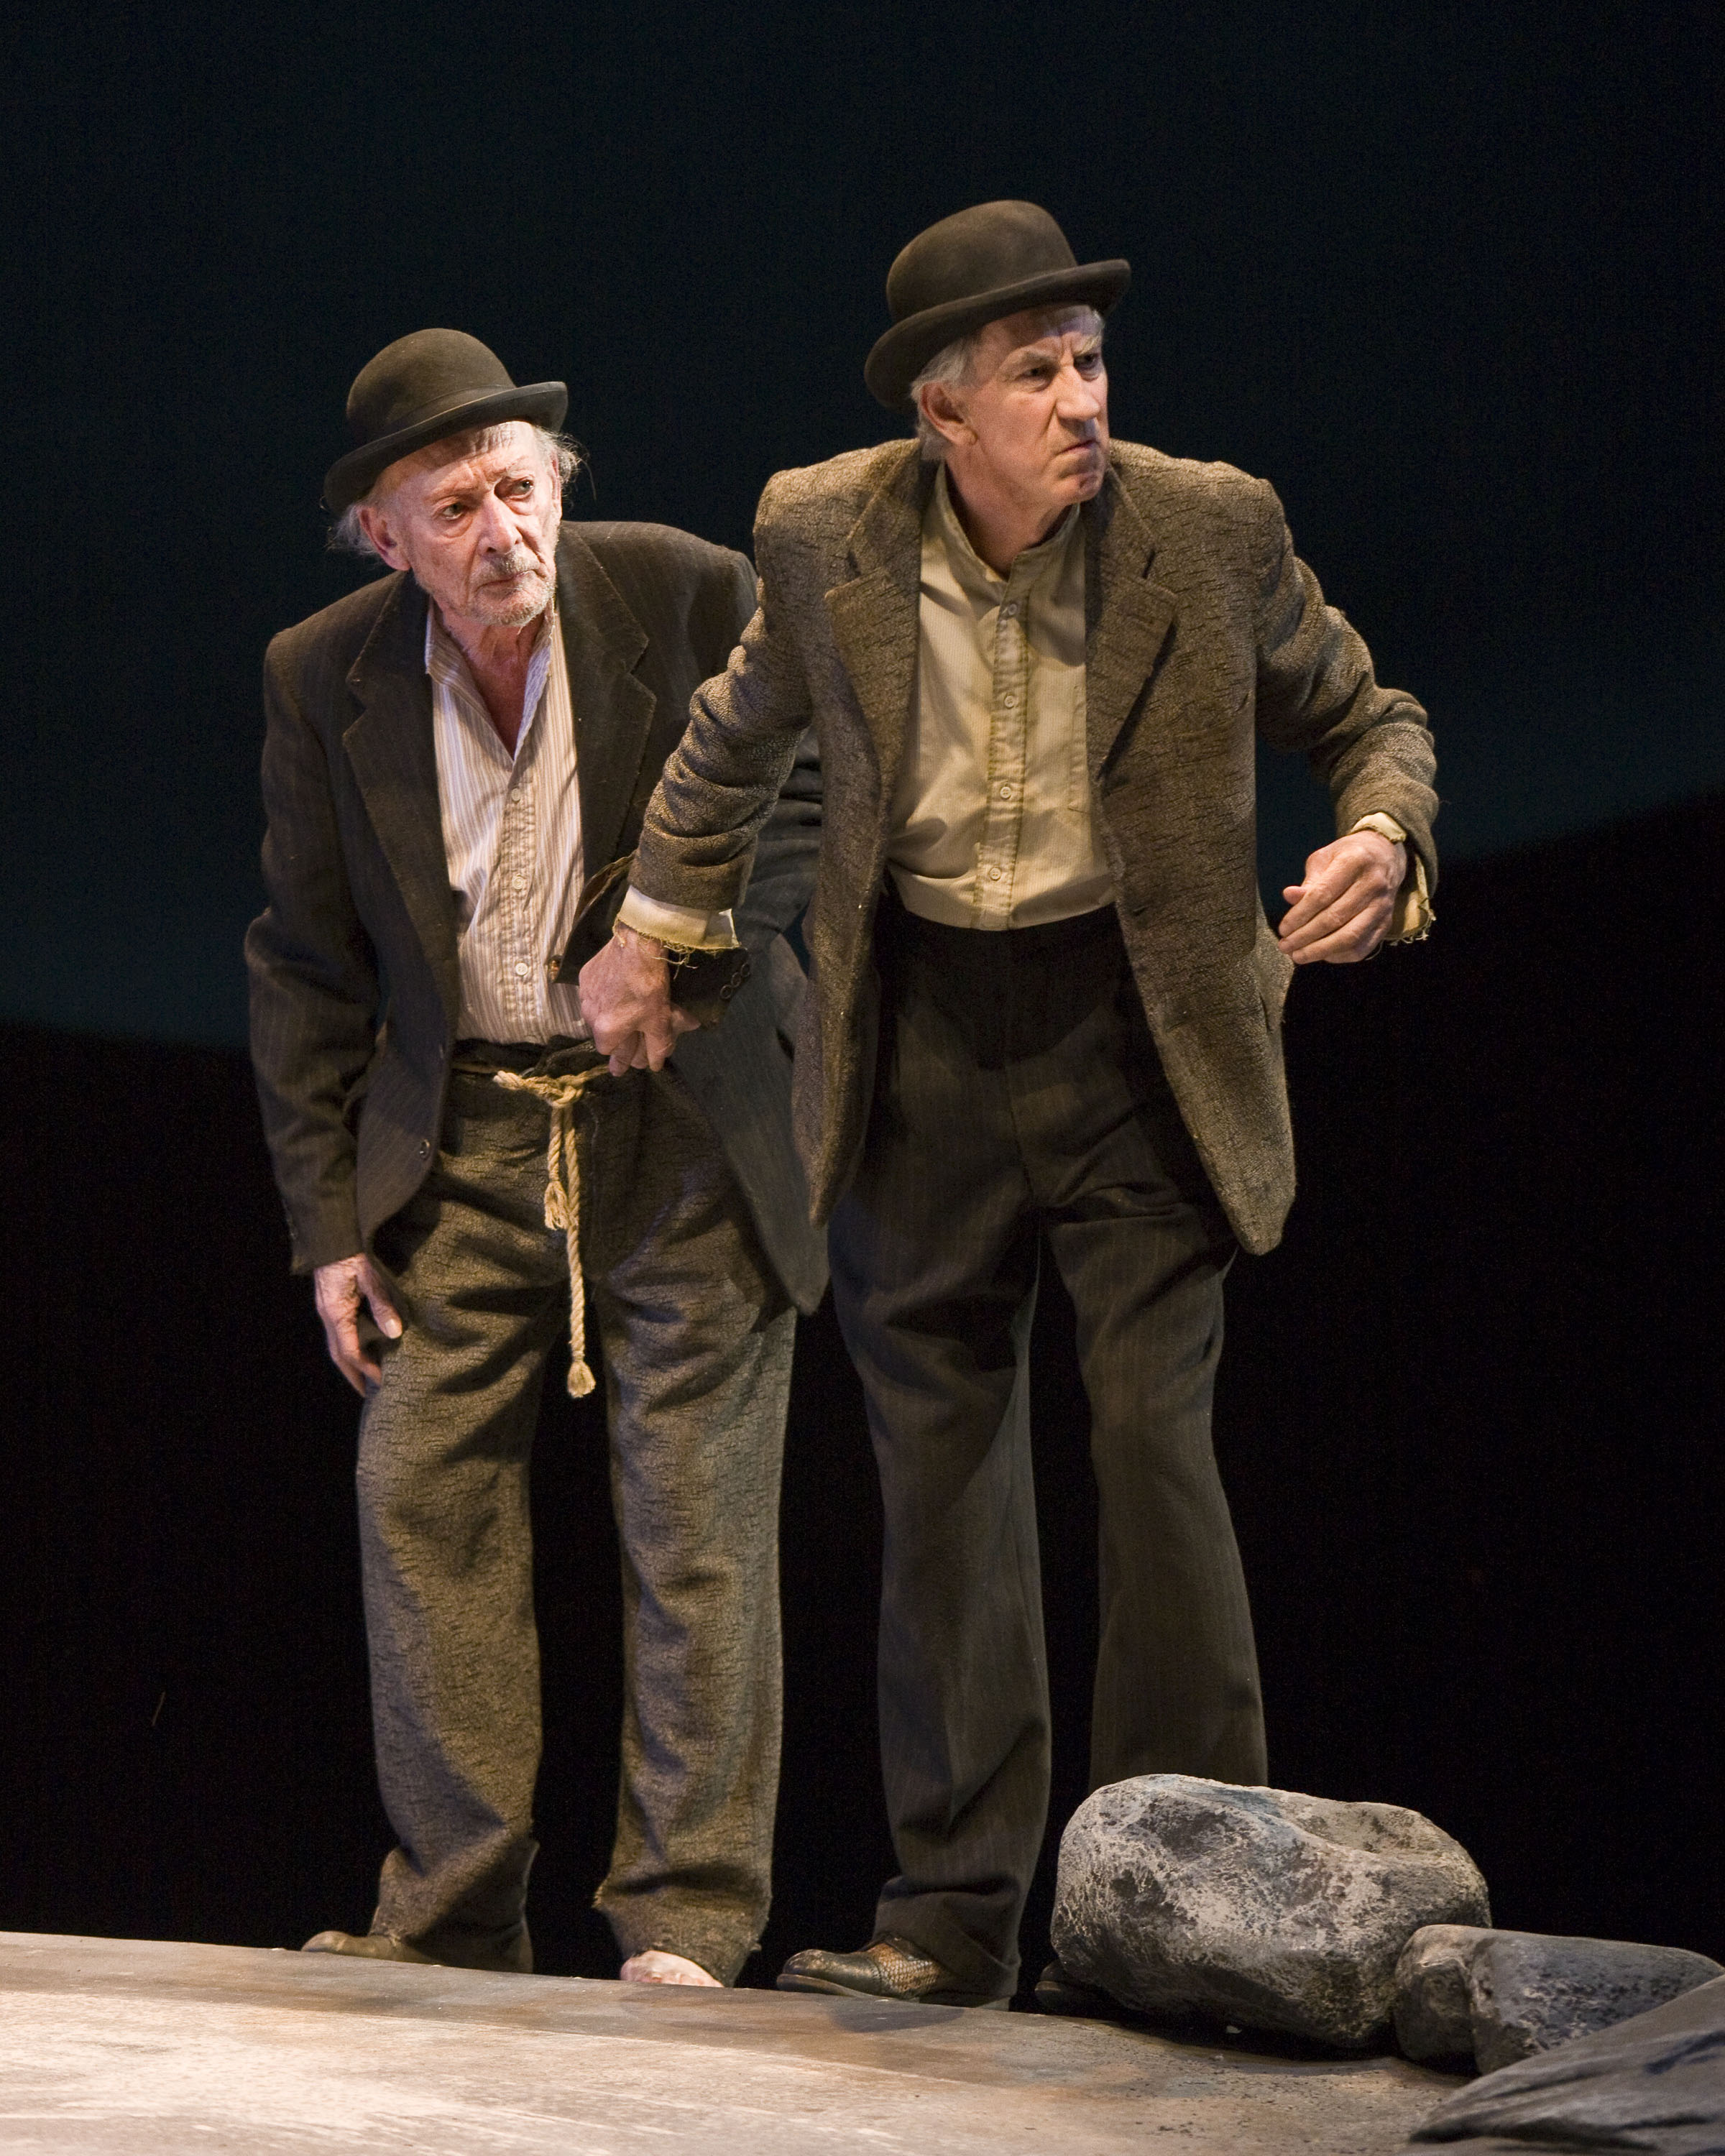 Best Essay Topics For High School Waiting For Godot By Samuel Beckett At The Mark Taper Forum With Alan  Mandell Barry Essays On The Yellow Wallpaper also Essay For Science Los Angeles Theater Review Waiting For Godot Mark Taper Forum My Hobby Essay In English